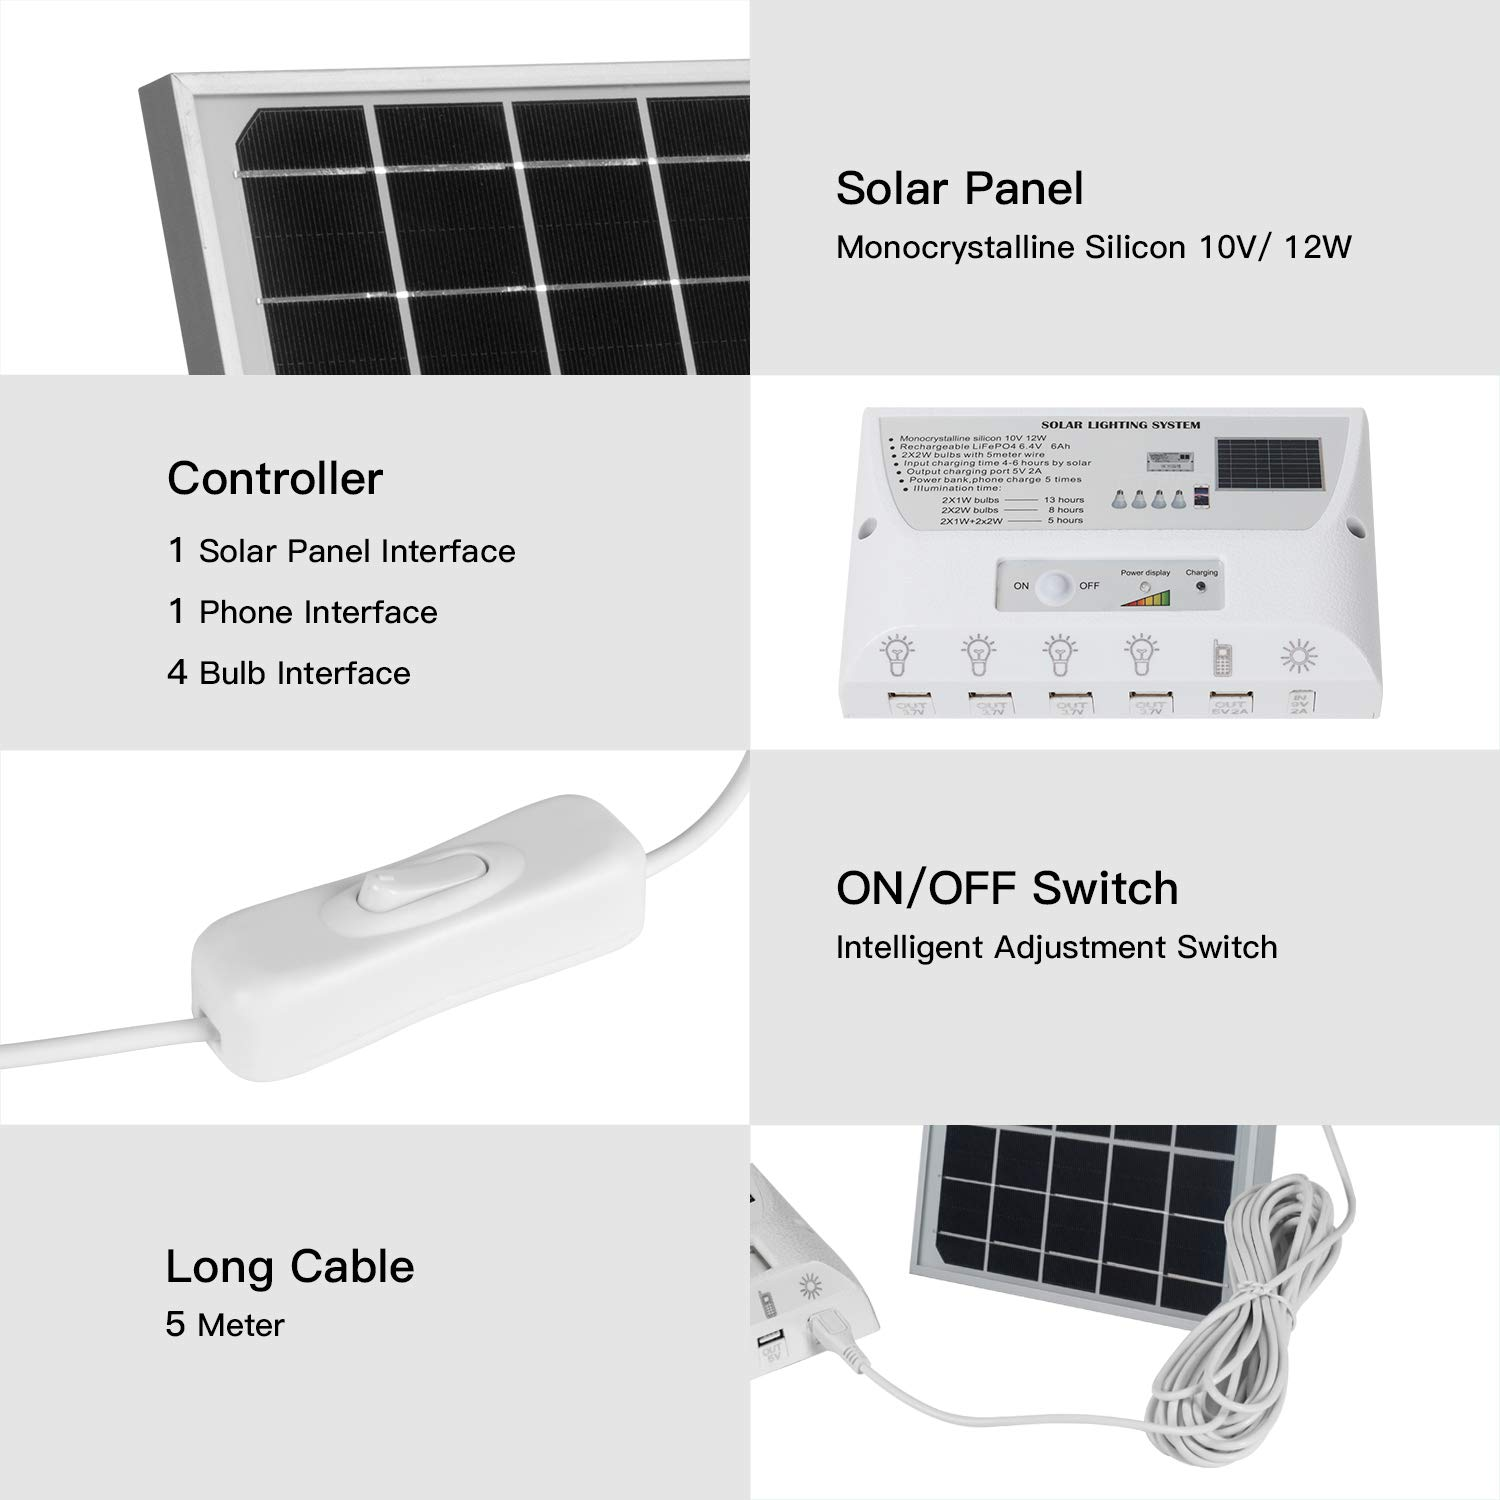 YINGHAO Upgraded 12W Solar Panel with 4 Bulbs Solar LED Lighting System /& Phone Charger with 4 Imported LED Lights USB Port with Cell Phone Chargers Included 12W Solar Panel Charge Controller